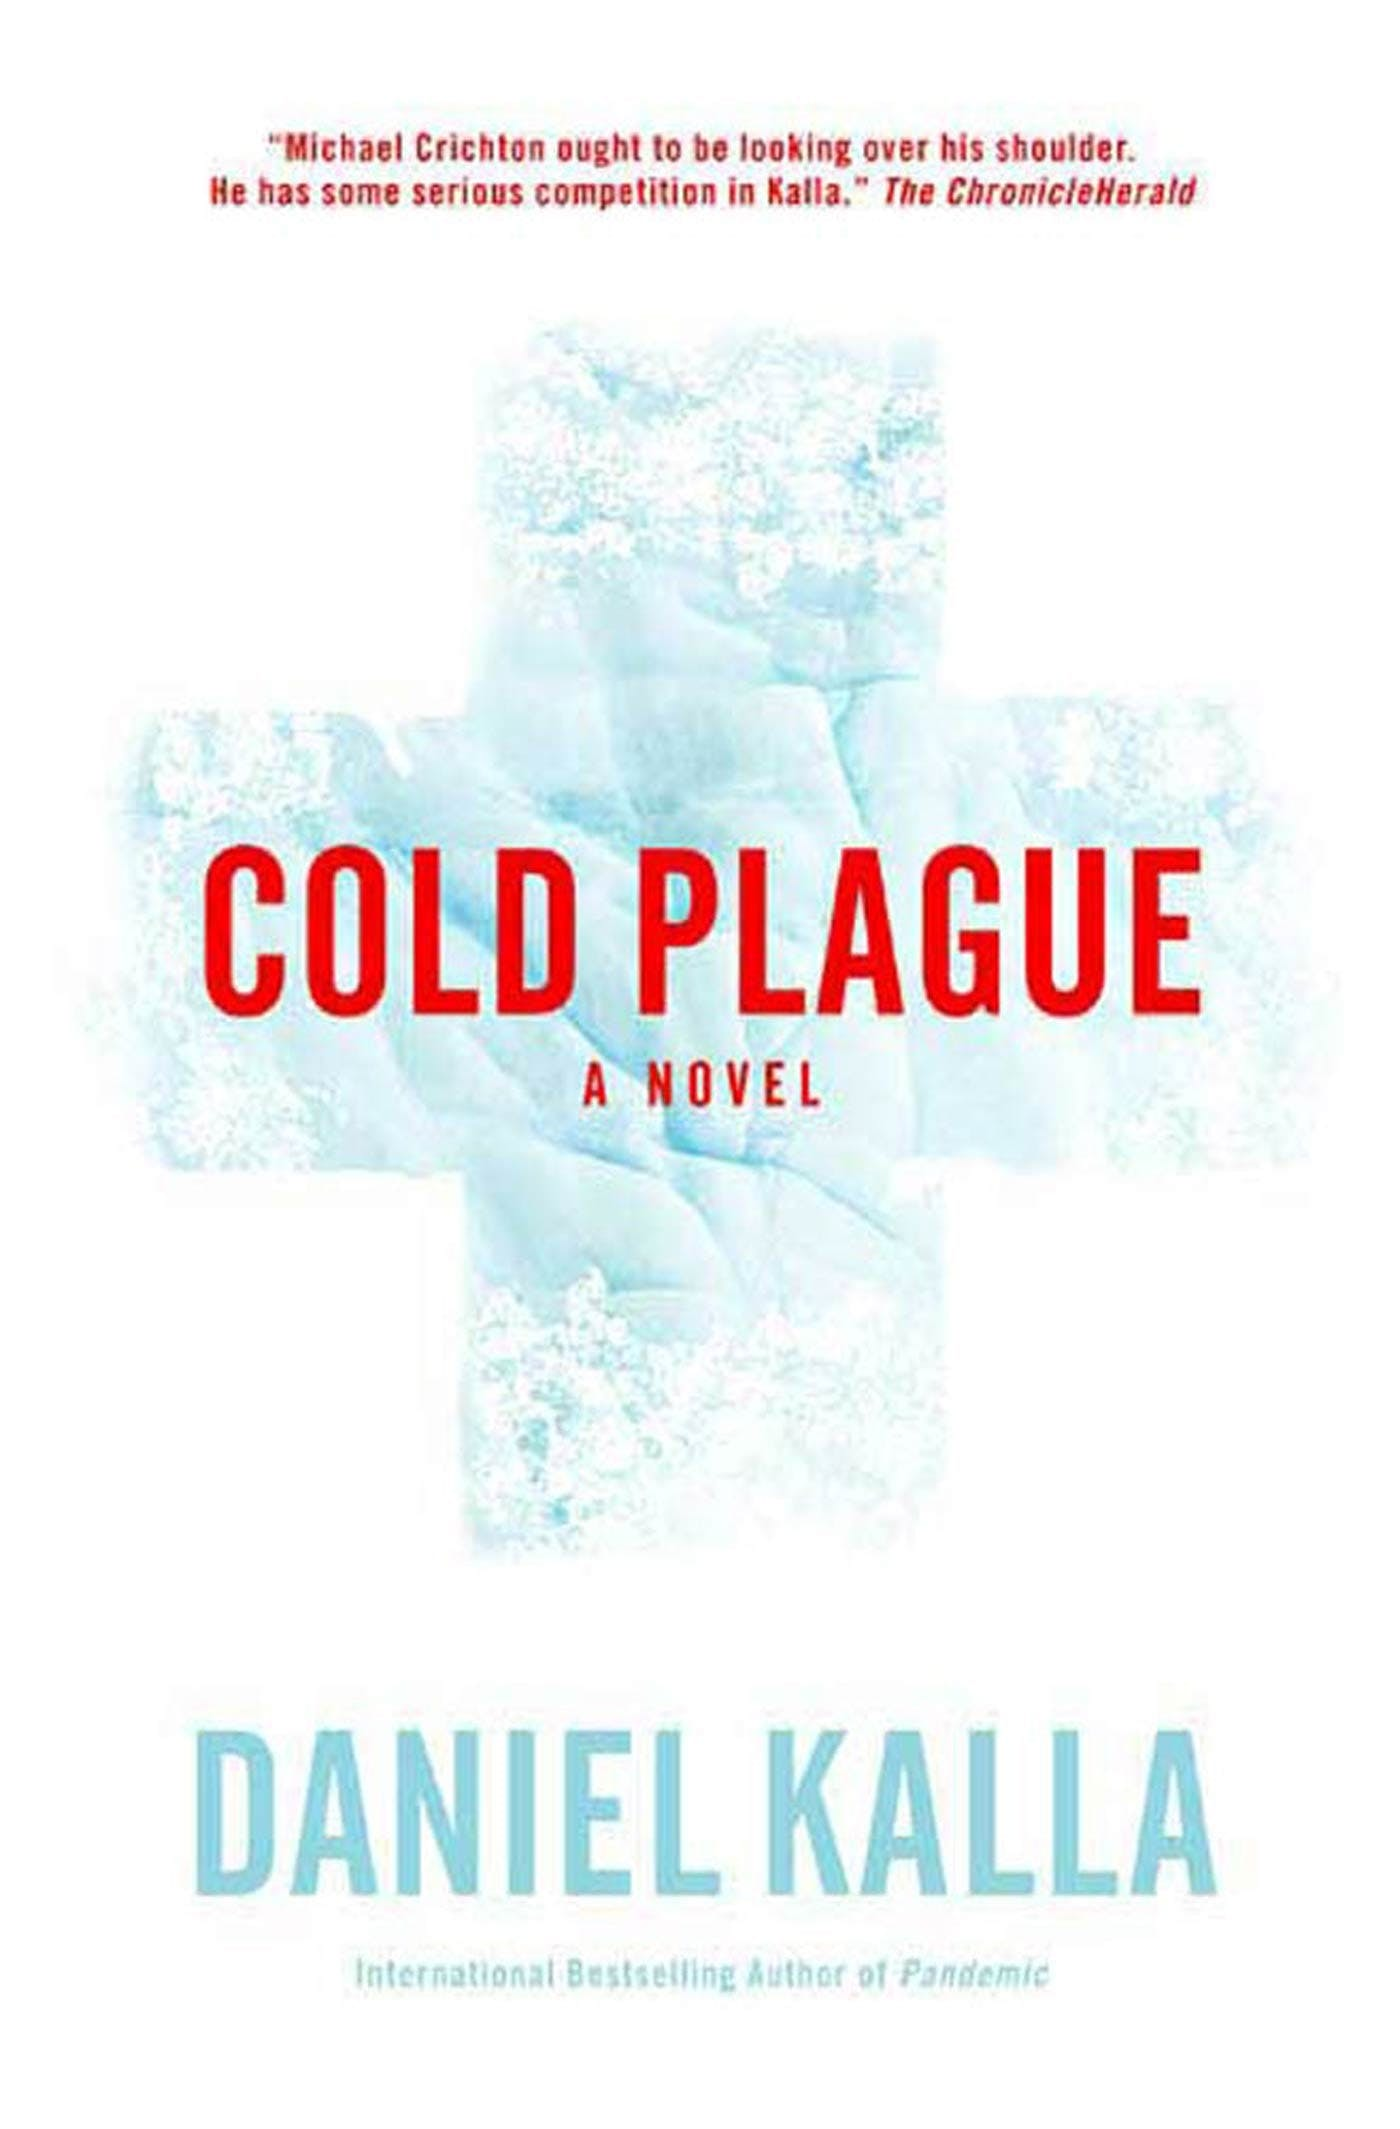 Image of Cold Plague